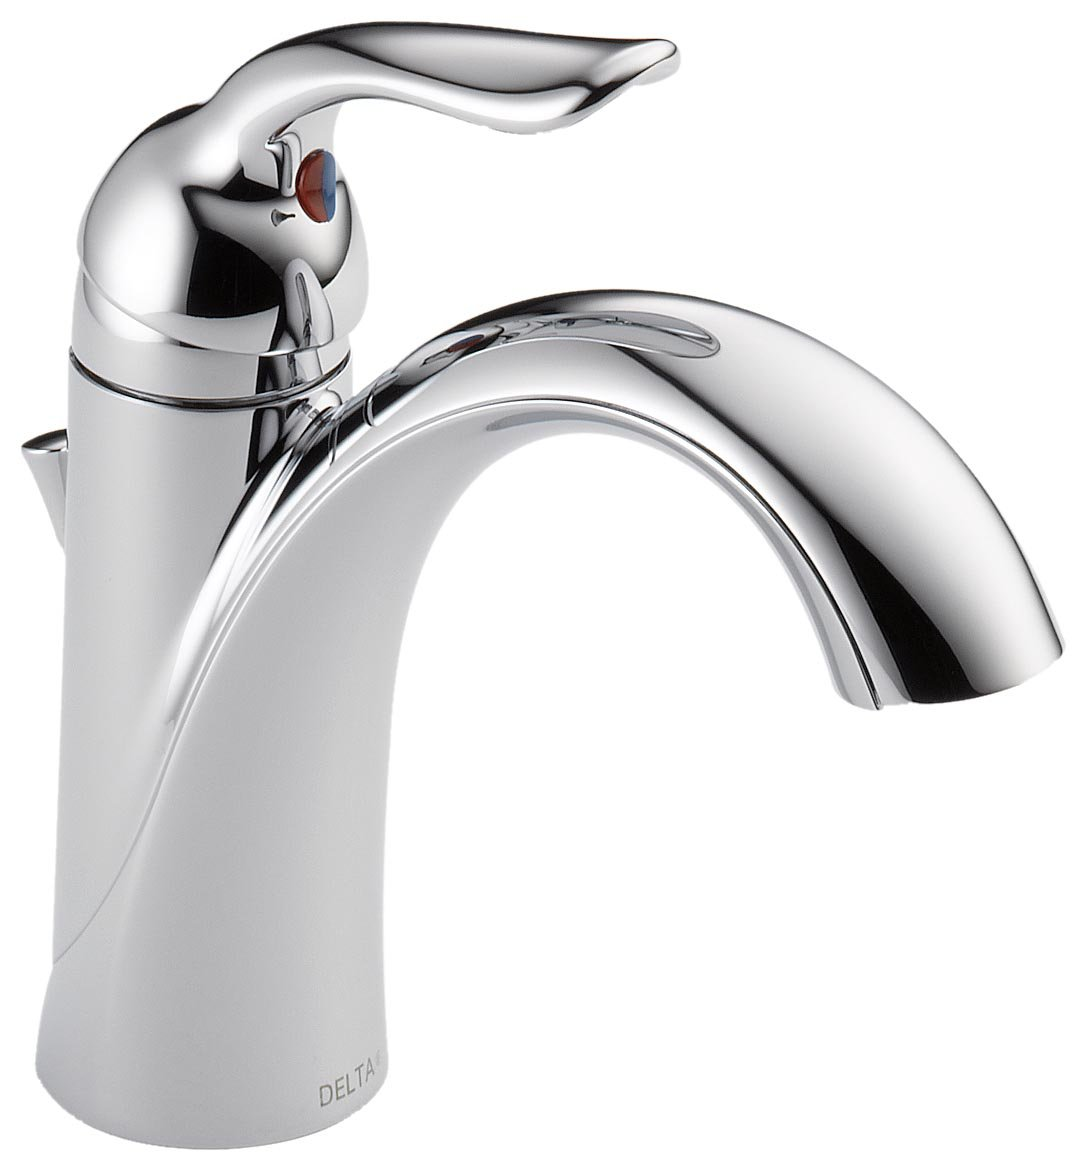 Delta 538 MPU DST Lahara Single Handle Centerset Bathroom Faucet, Chrome    Delta S Lahara Single Faucet Chrome   Amazon.com